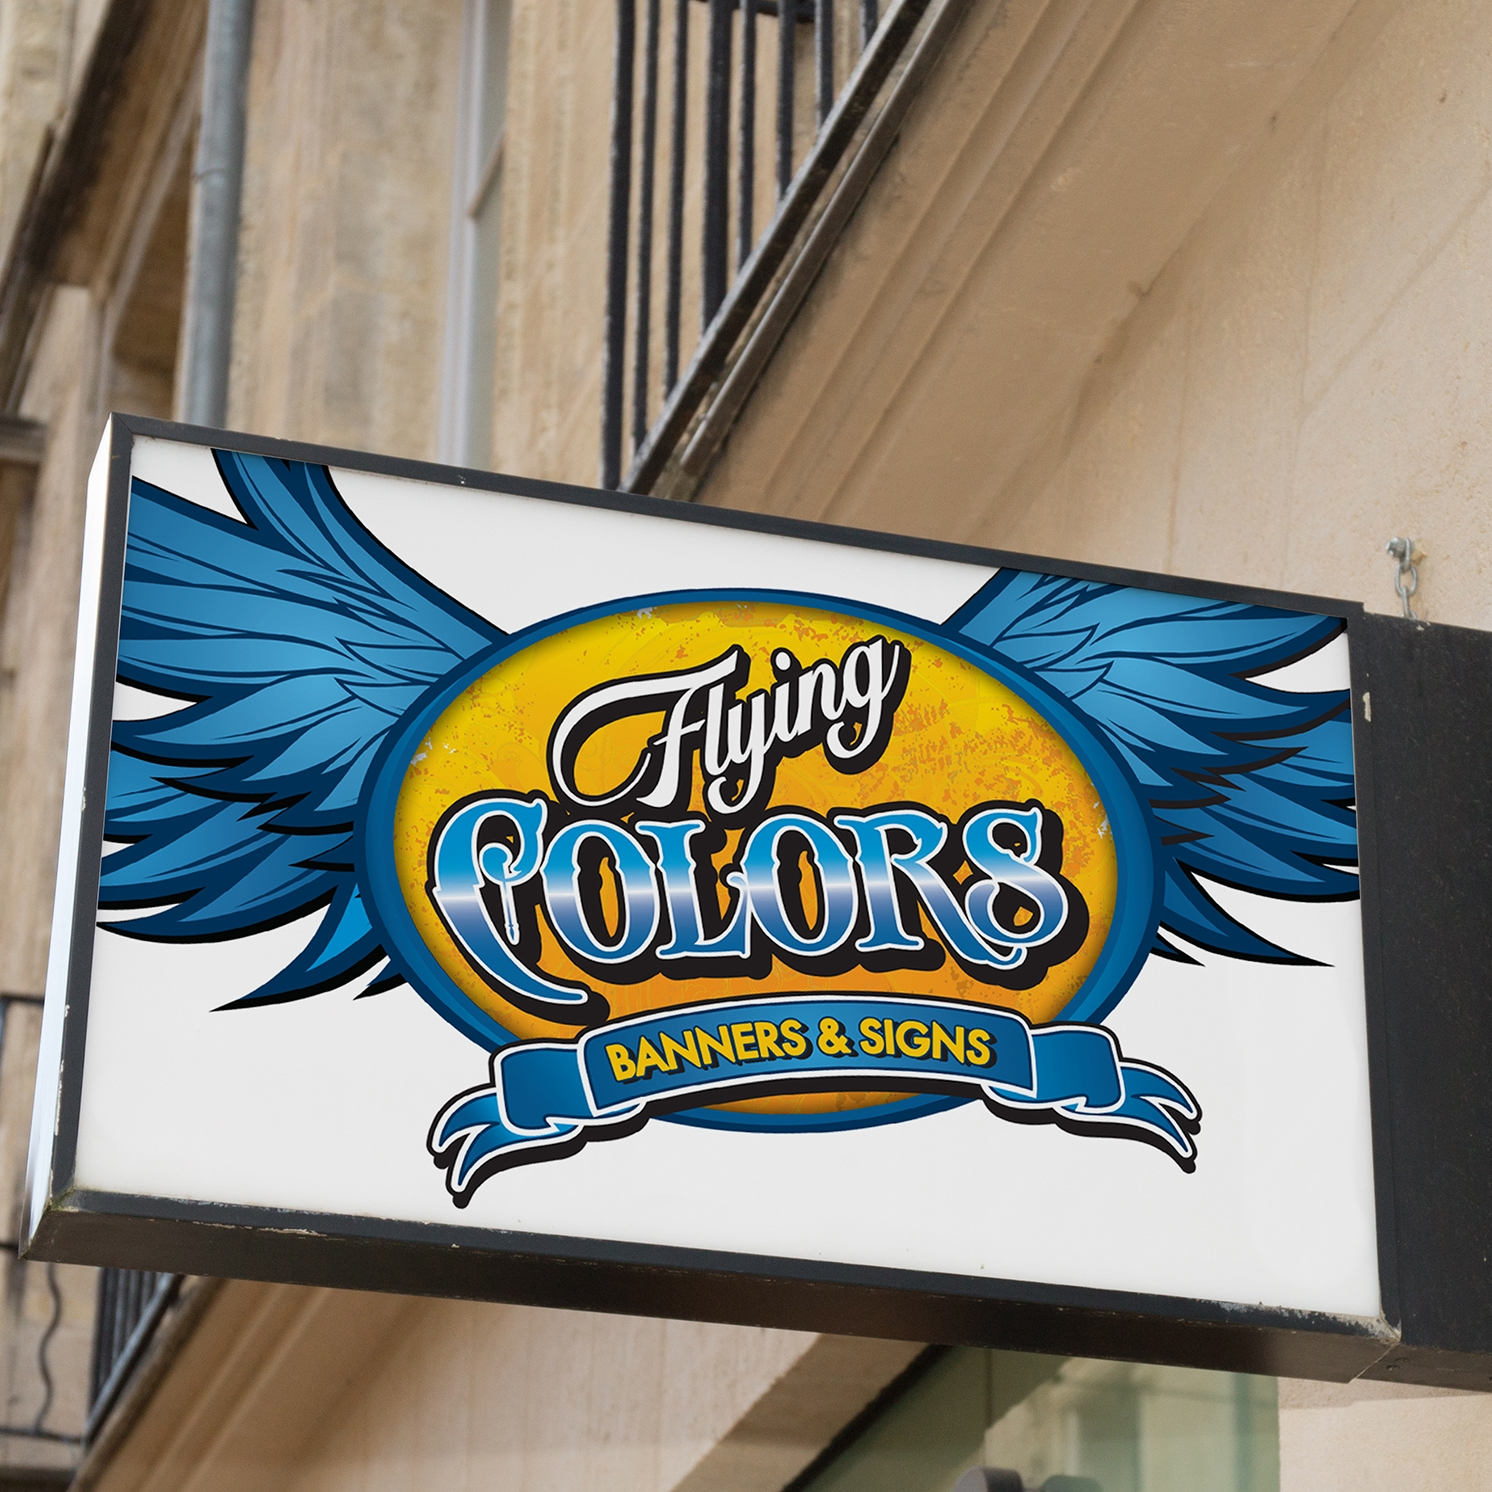 Flying Colors Banners & Signs